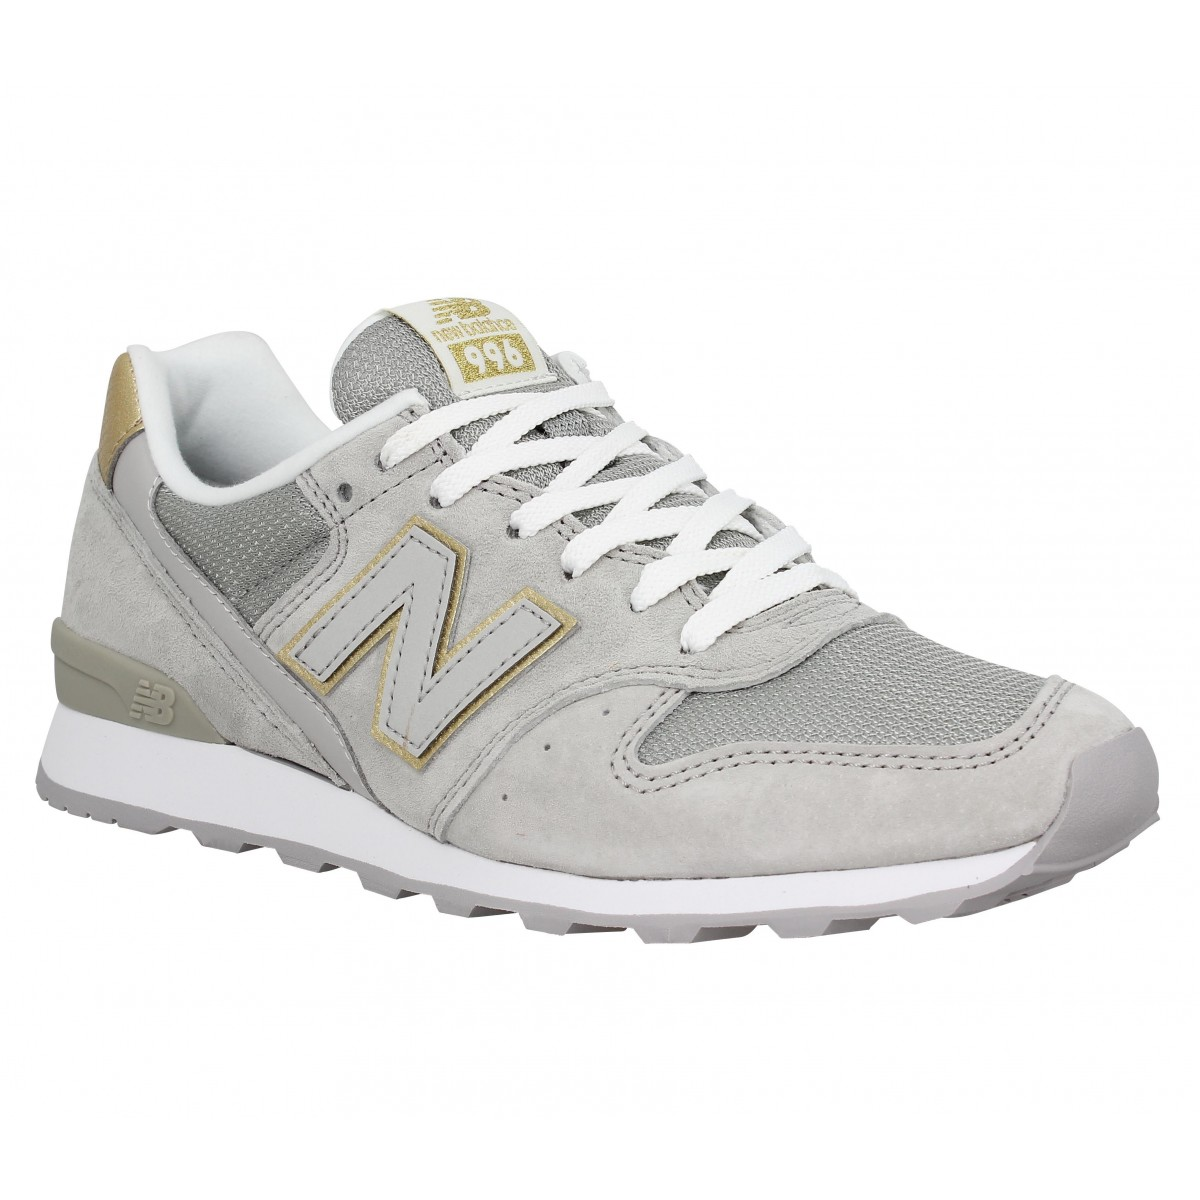 Baskets NEW BALANCE 996 velours + toile Femme Beige